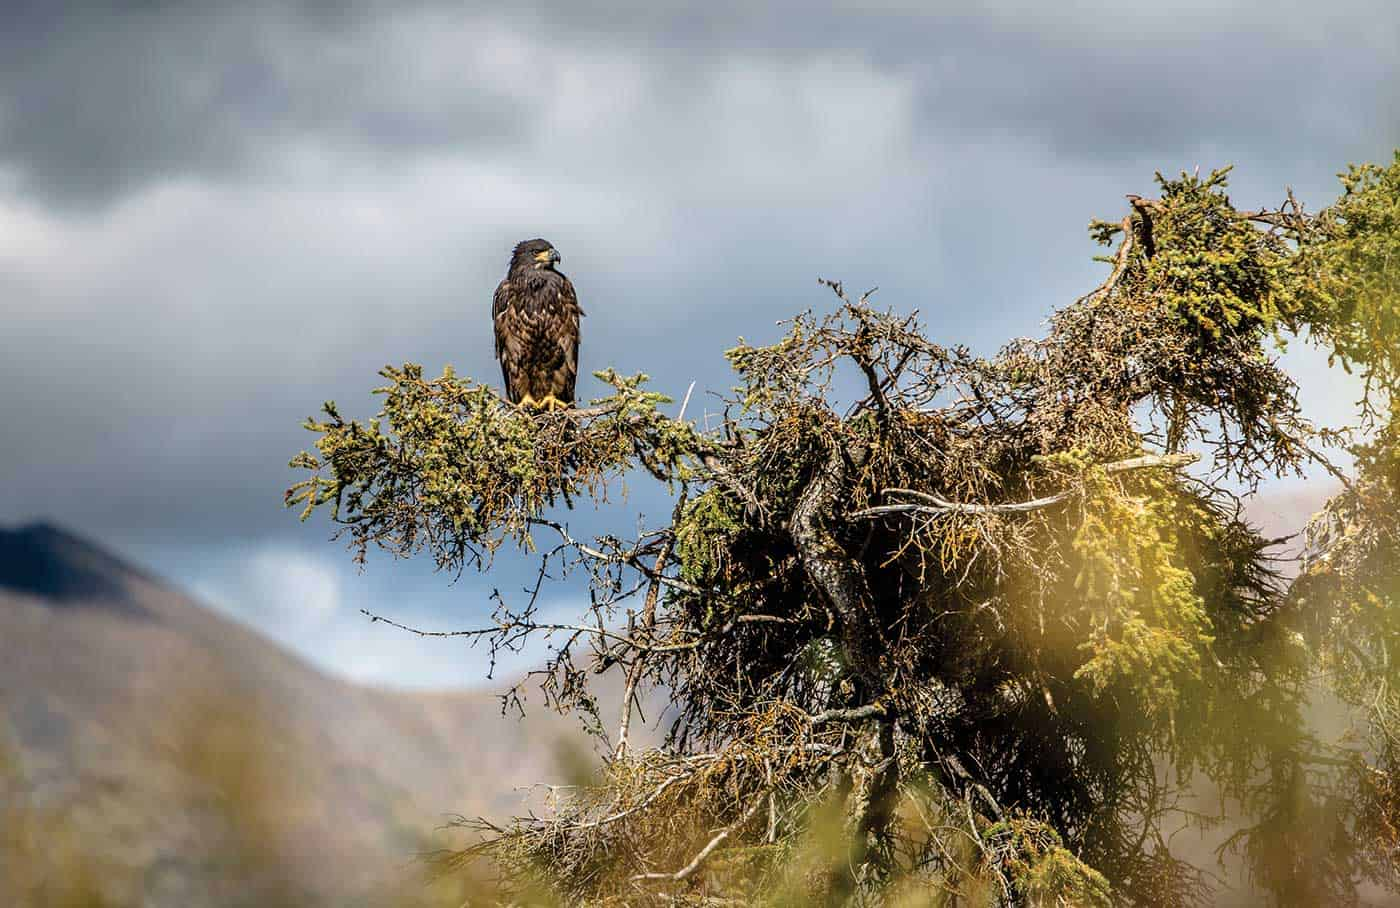 A golden eagle watching over her fishing hole.